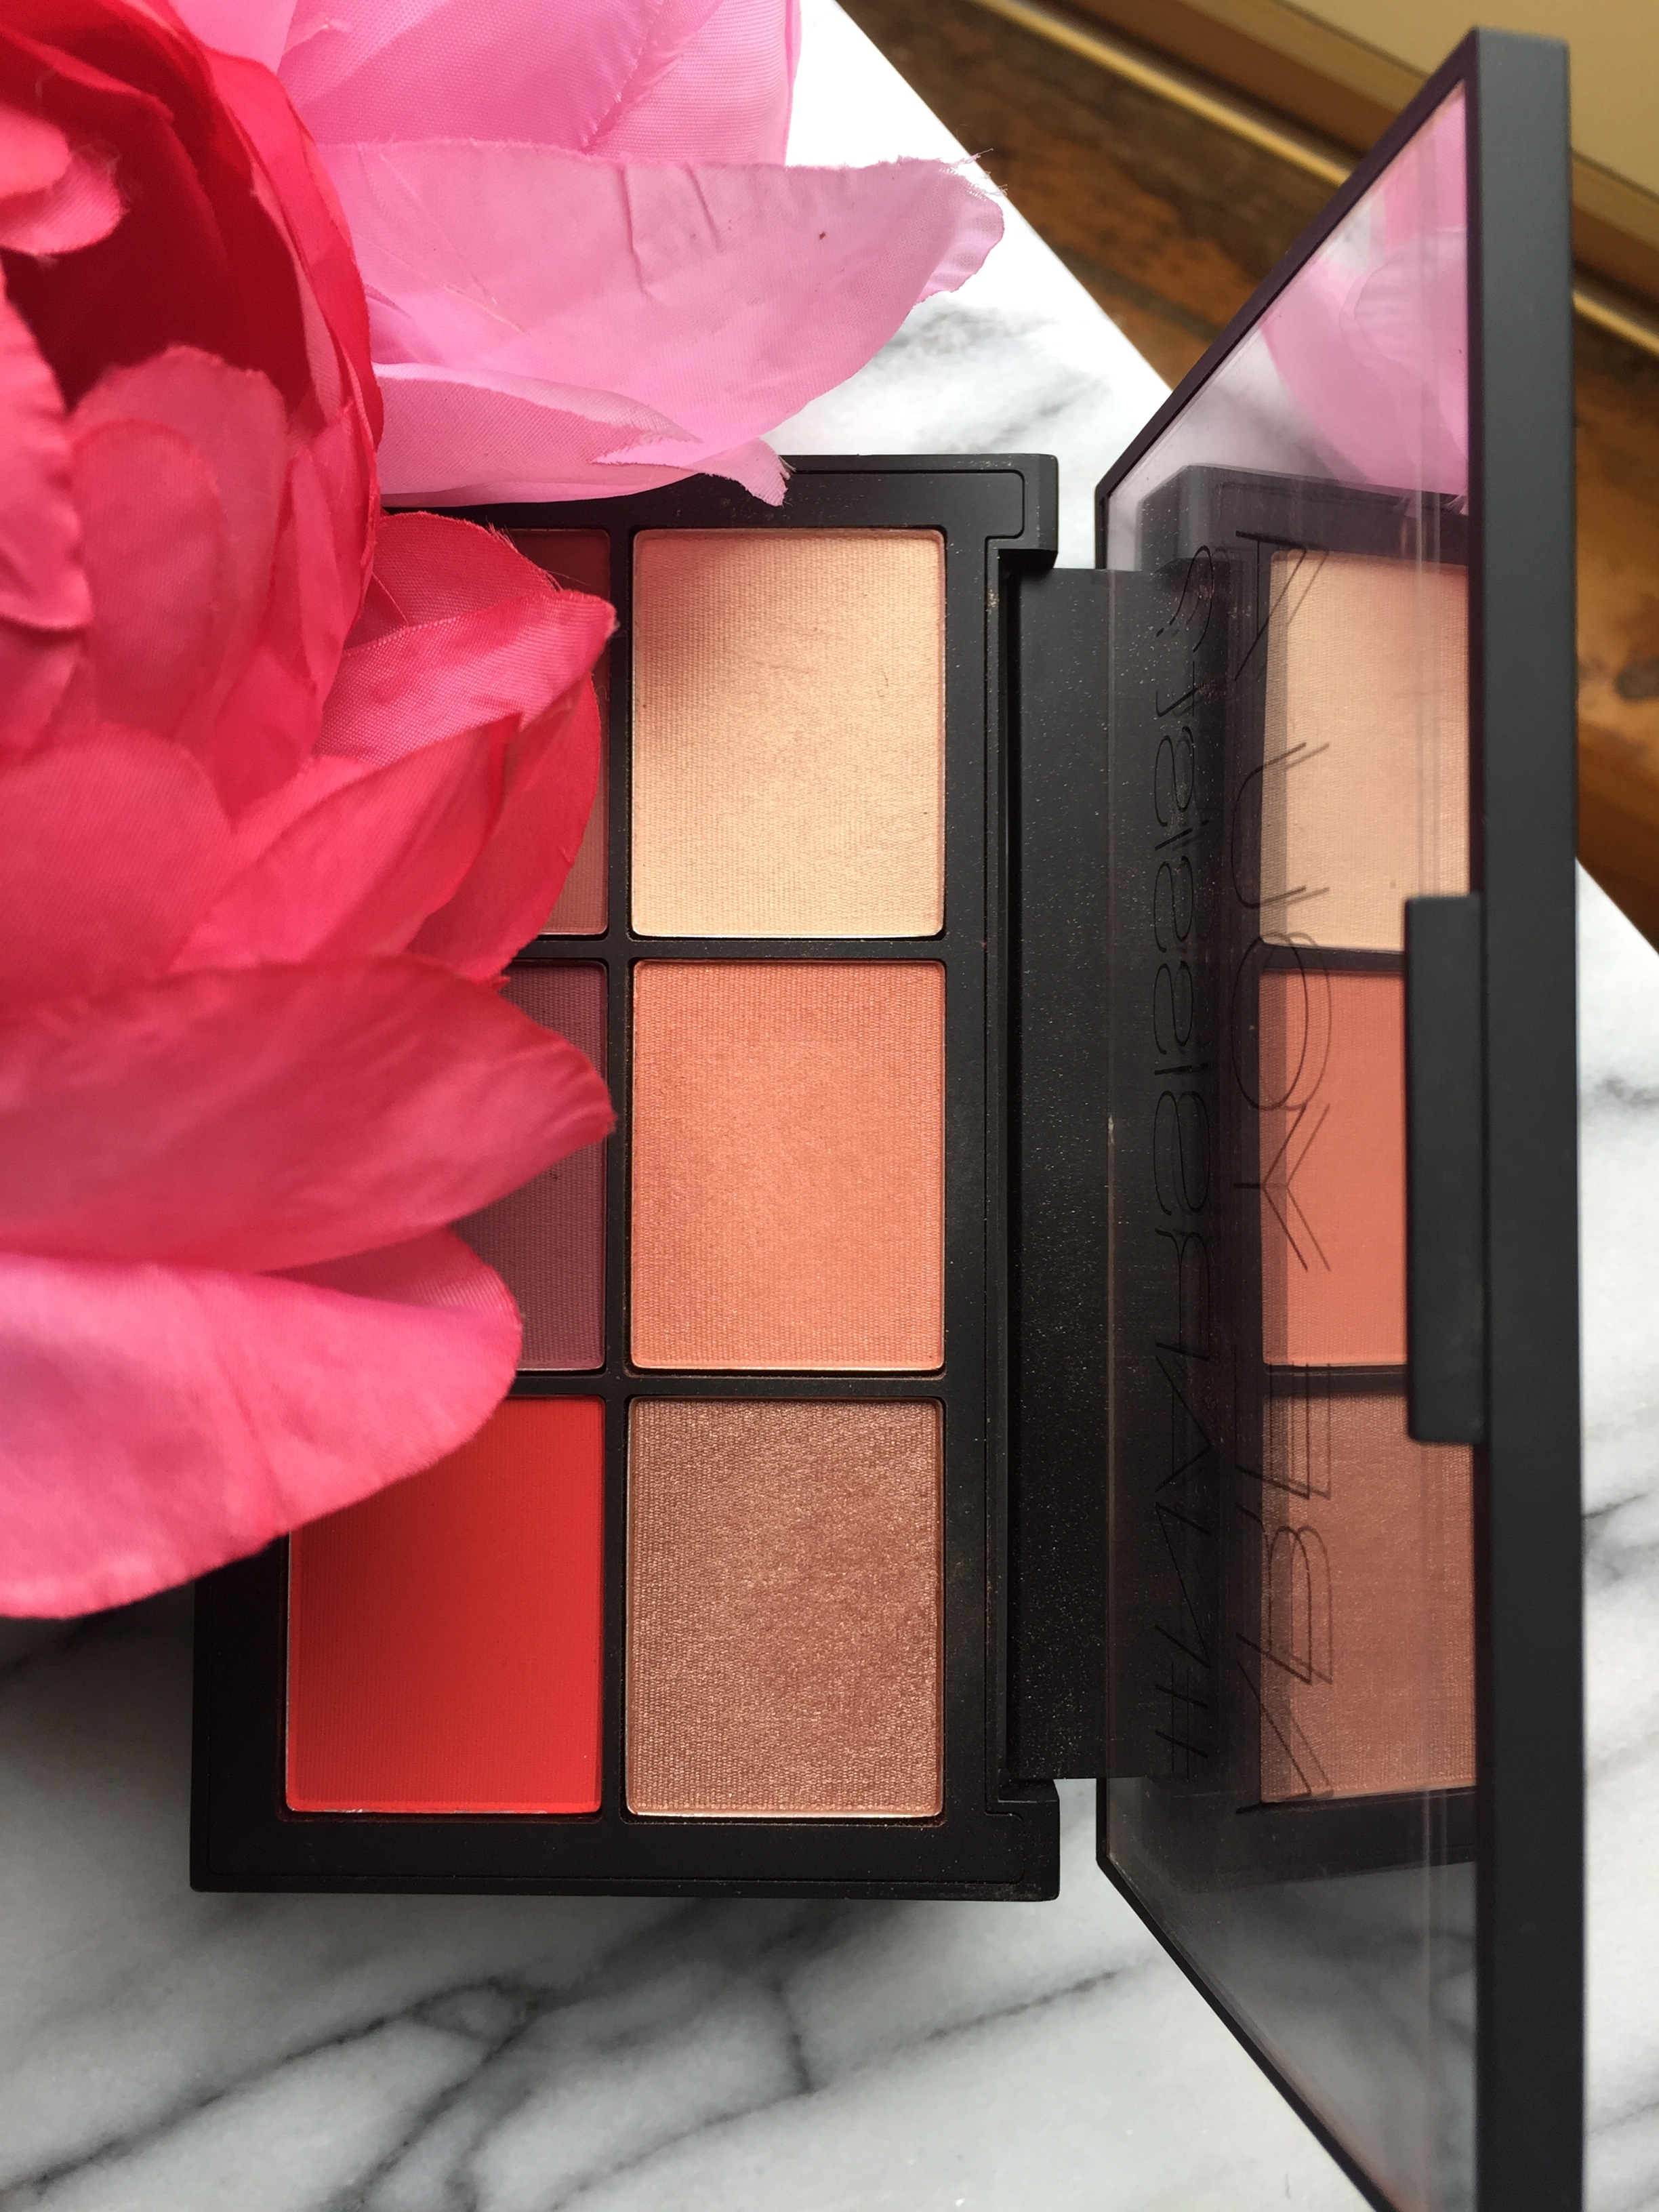 Nars Unfiltered 1 Blush Palette